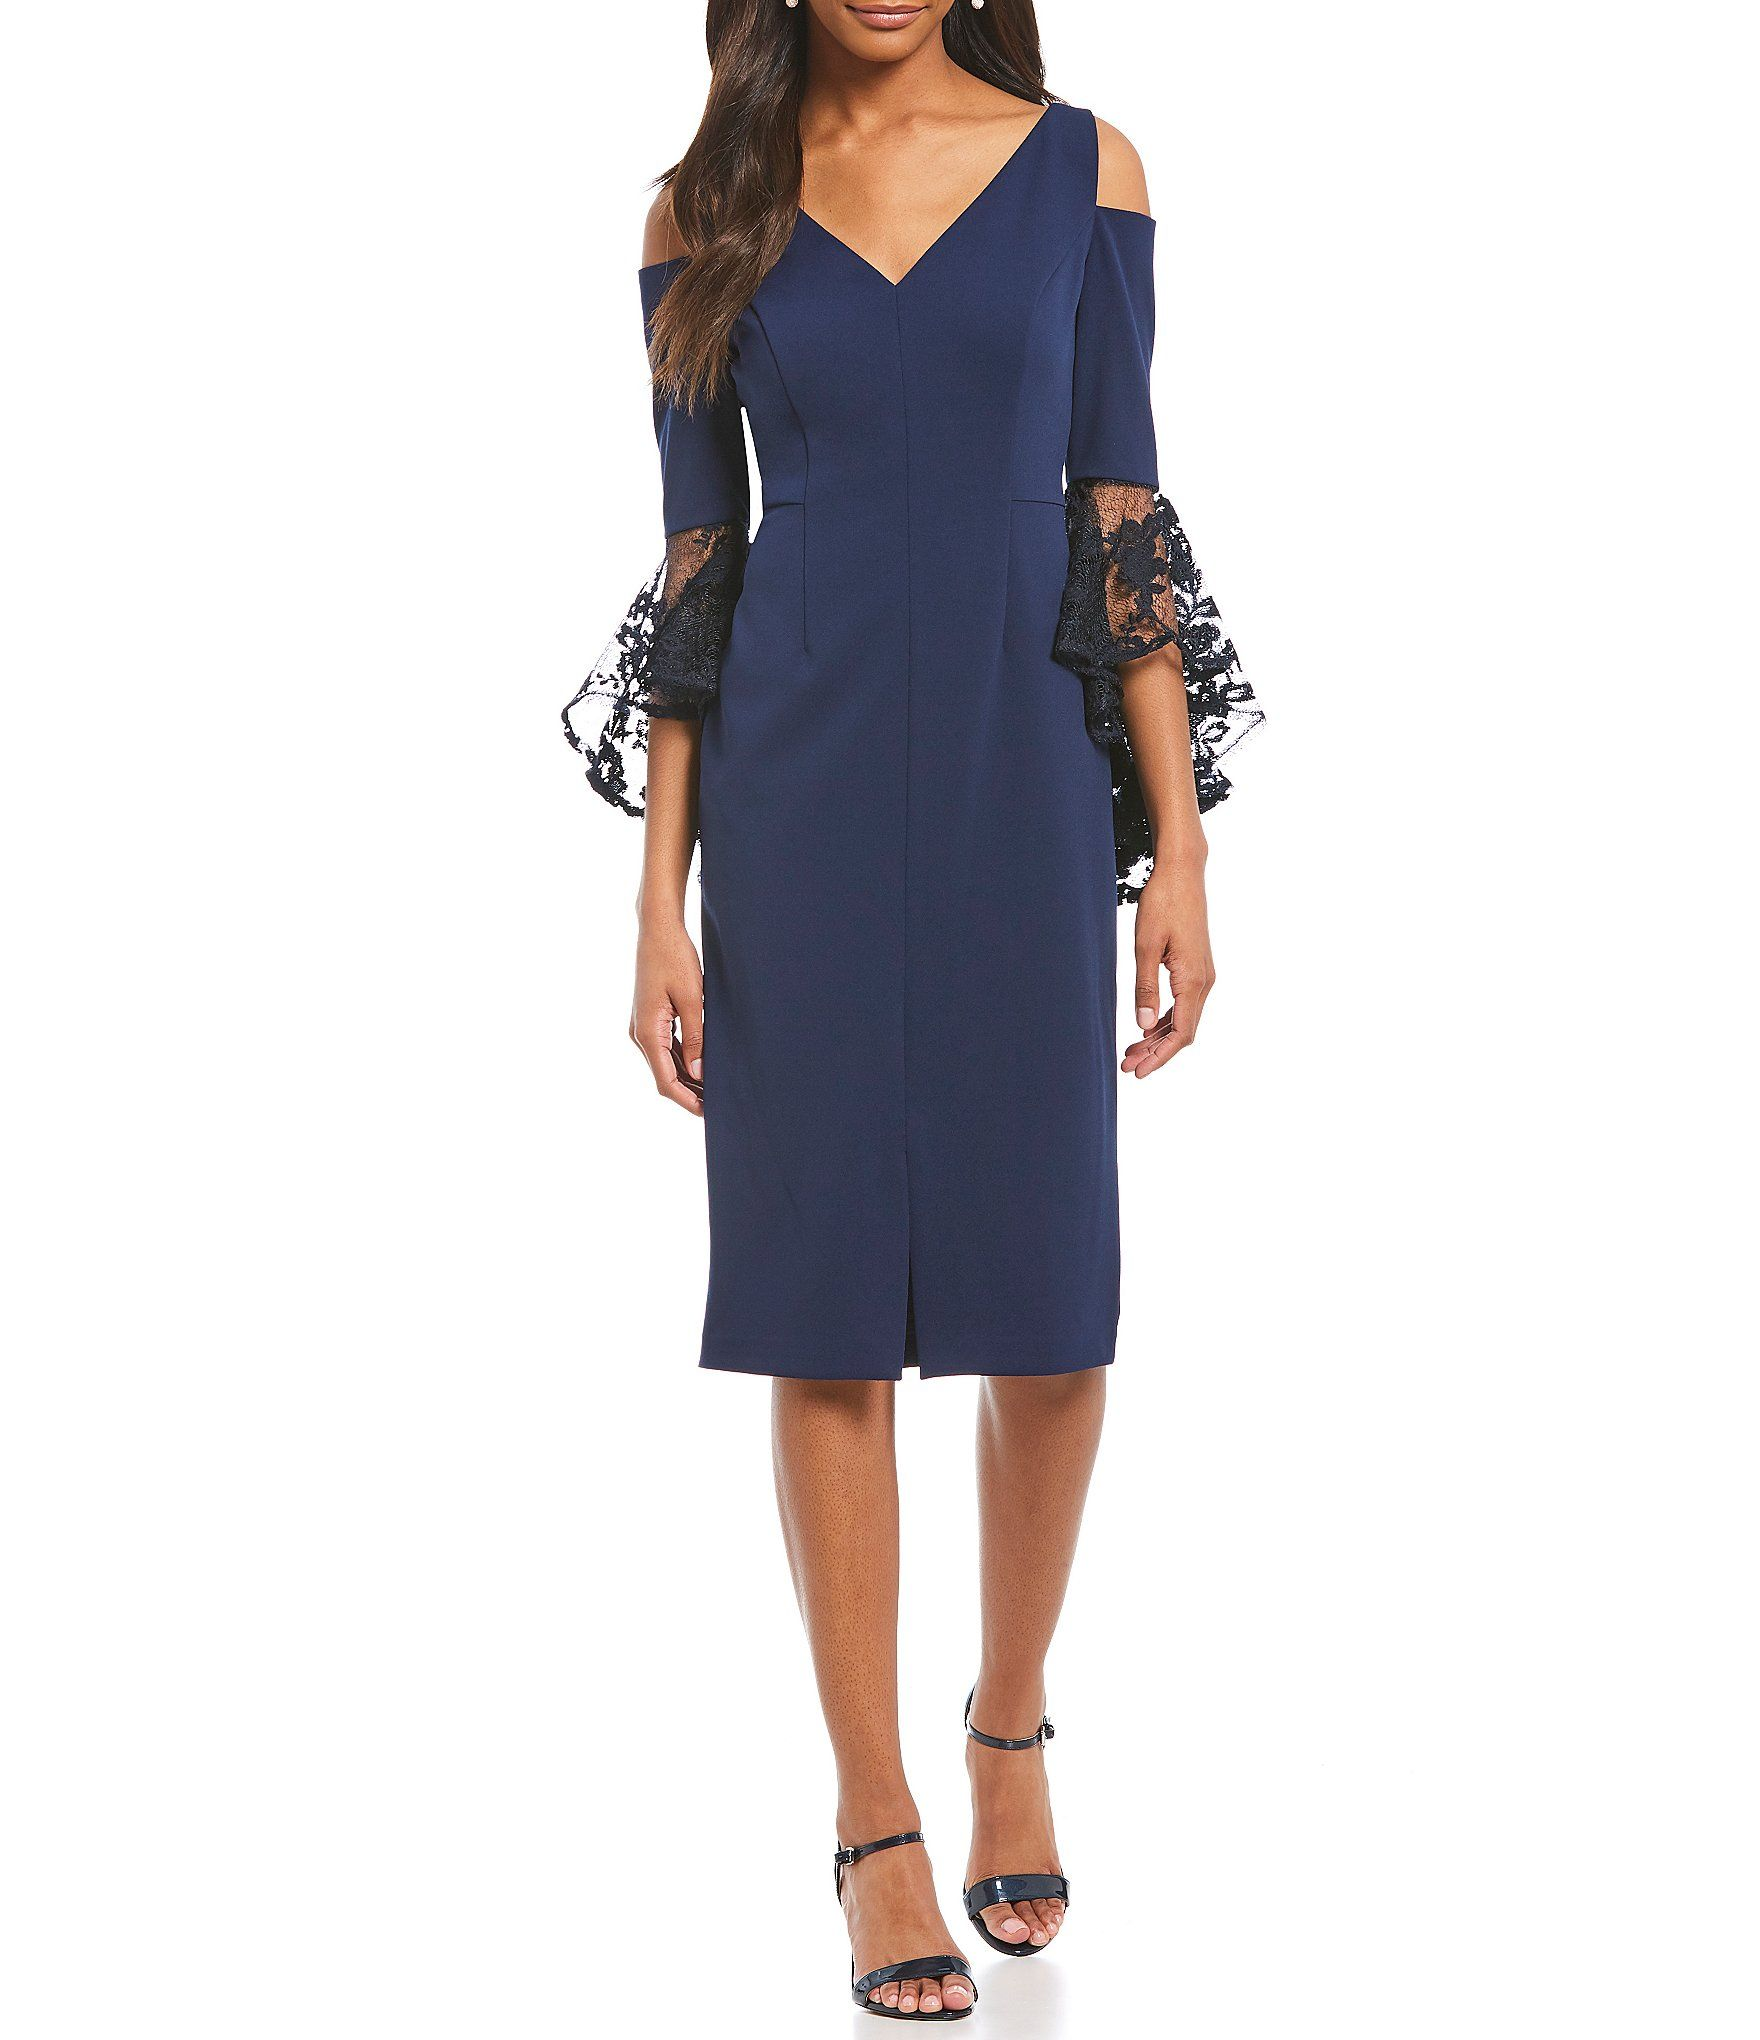 b1b7d073428 Shop for Maggy London Lace Cascade Bell Sleeve Cold Shoulder Sheath Dress  at Dillards.com. Visit Dillards.com to find clothing